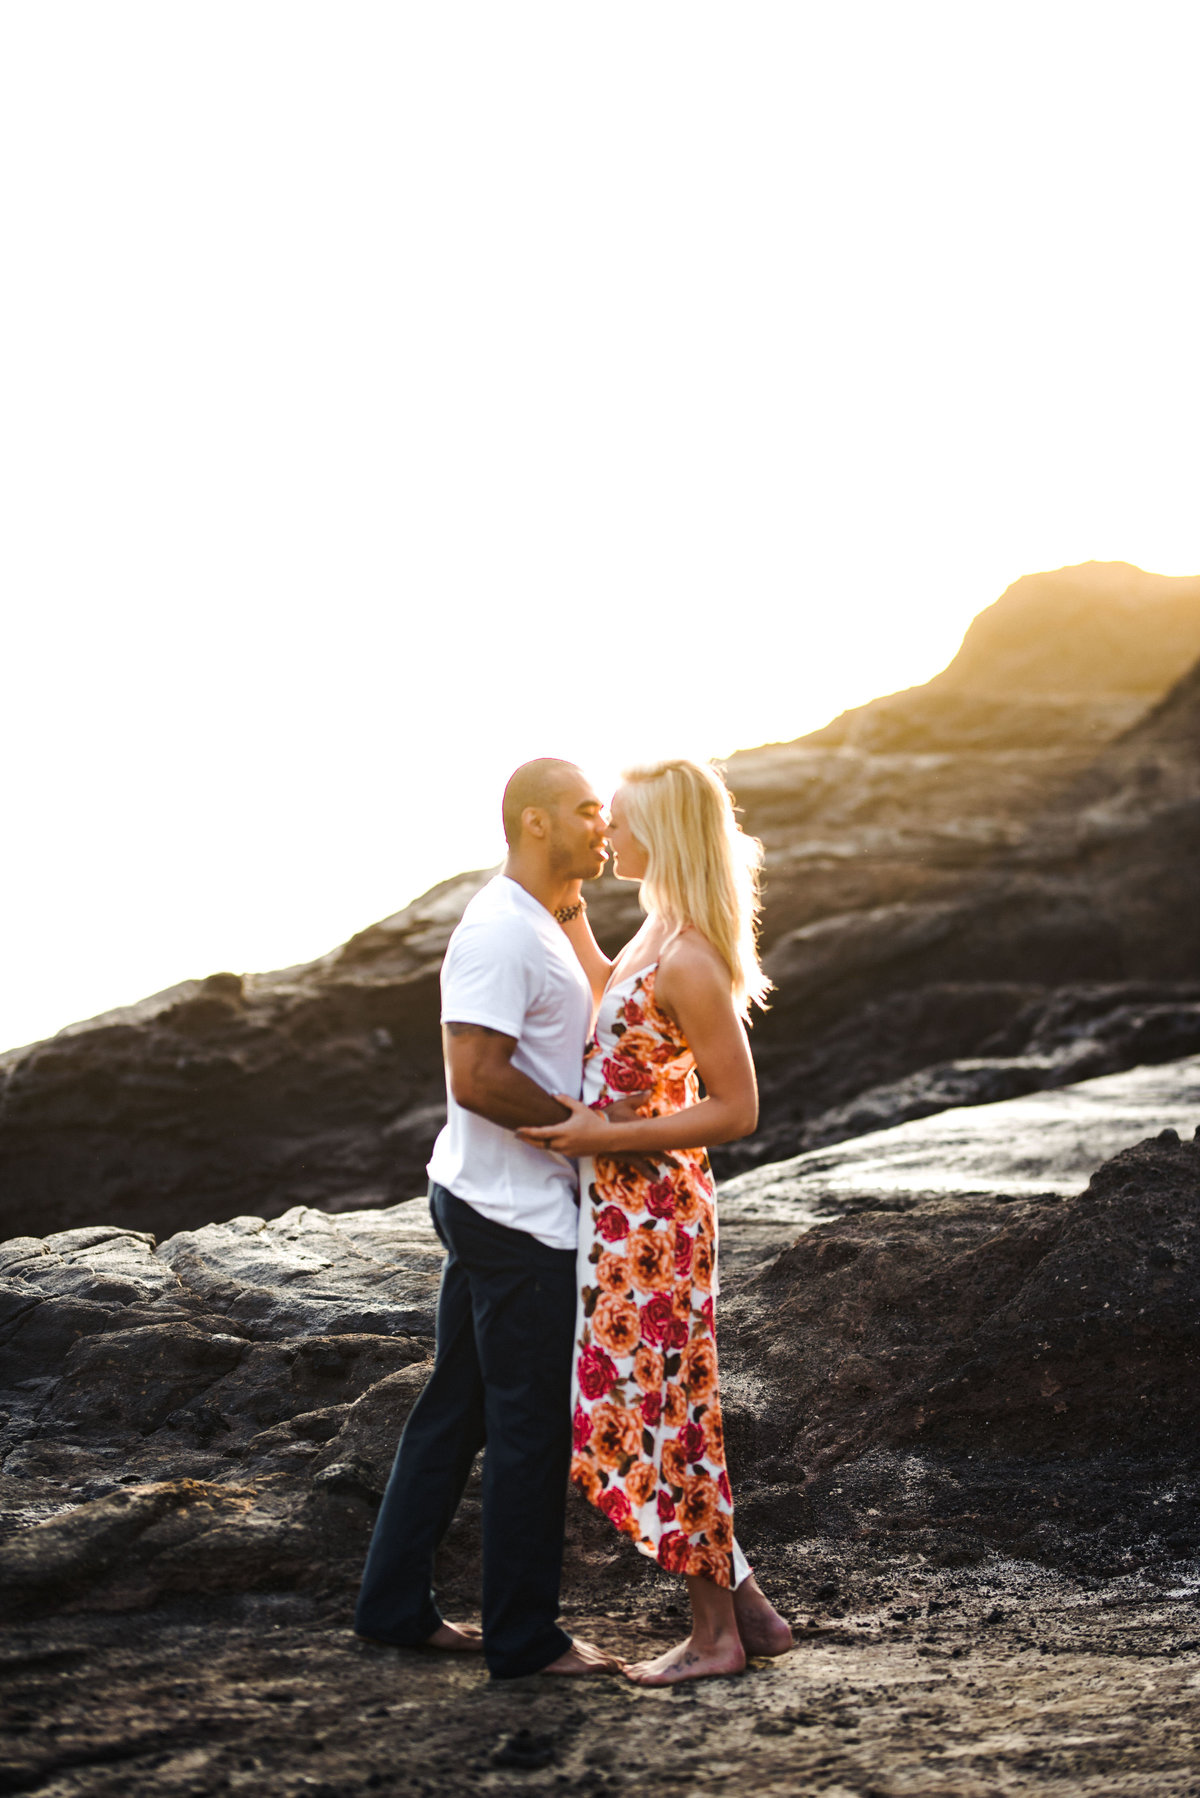 Eternity Beach Honolulu Hawaii Destination Engagement Session - 8